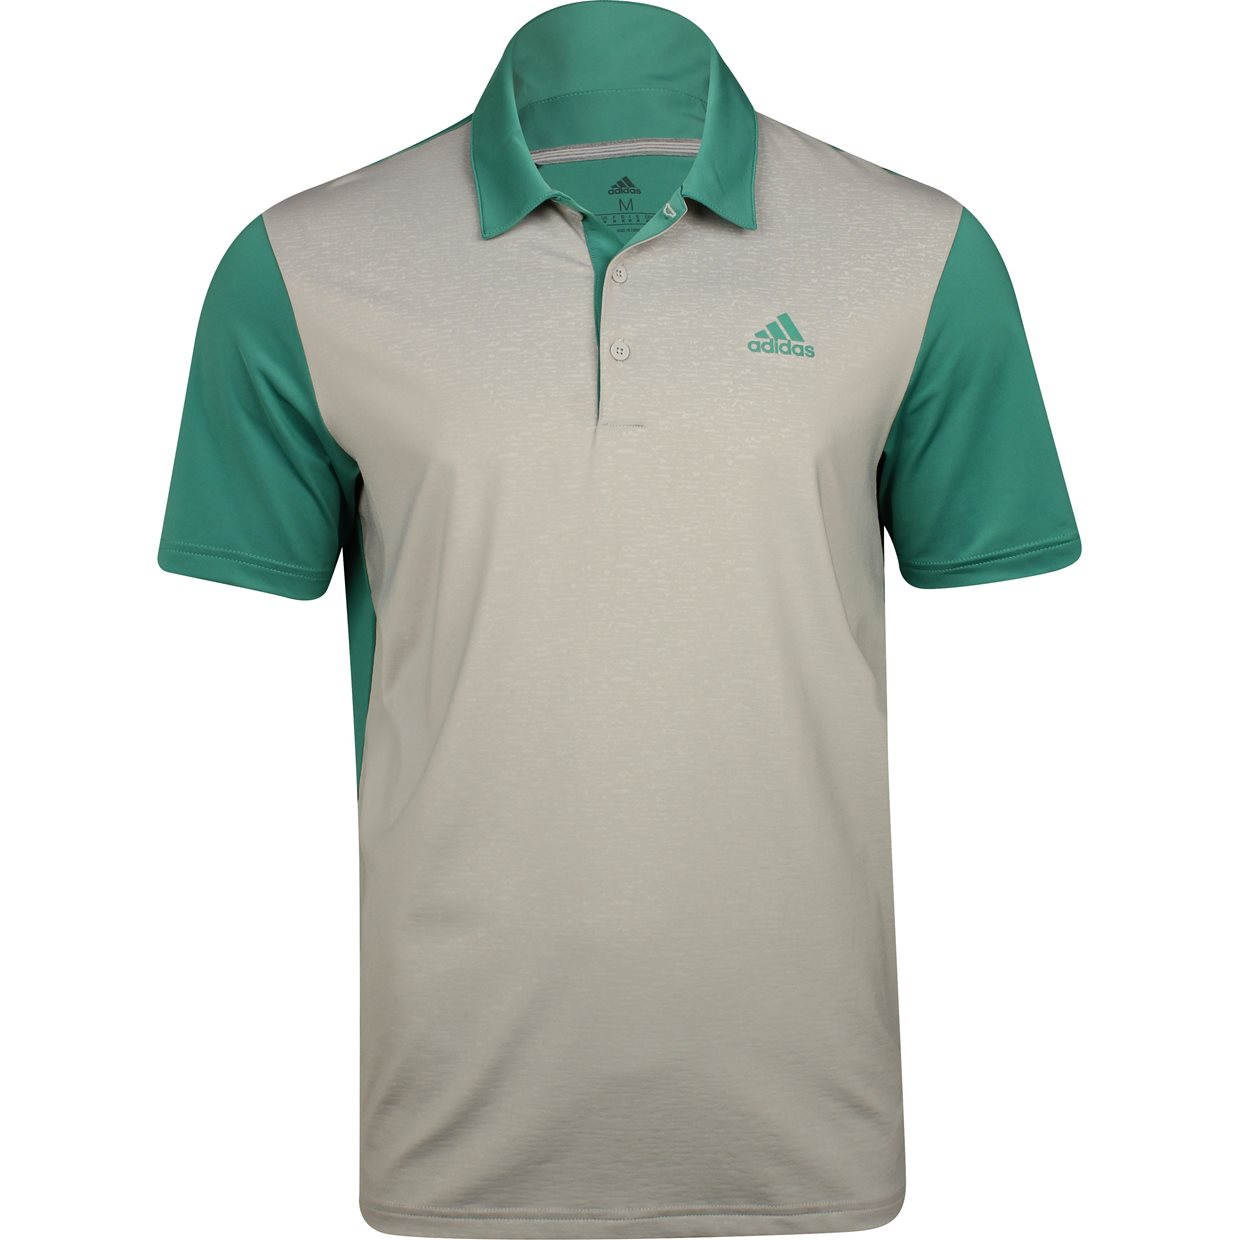 643630b5 Adidas Ultimate 2.0 Novelty Shirt Apparel at GlobalGolf.com